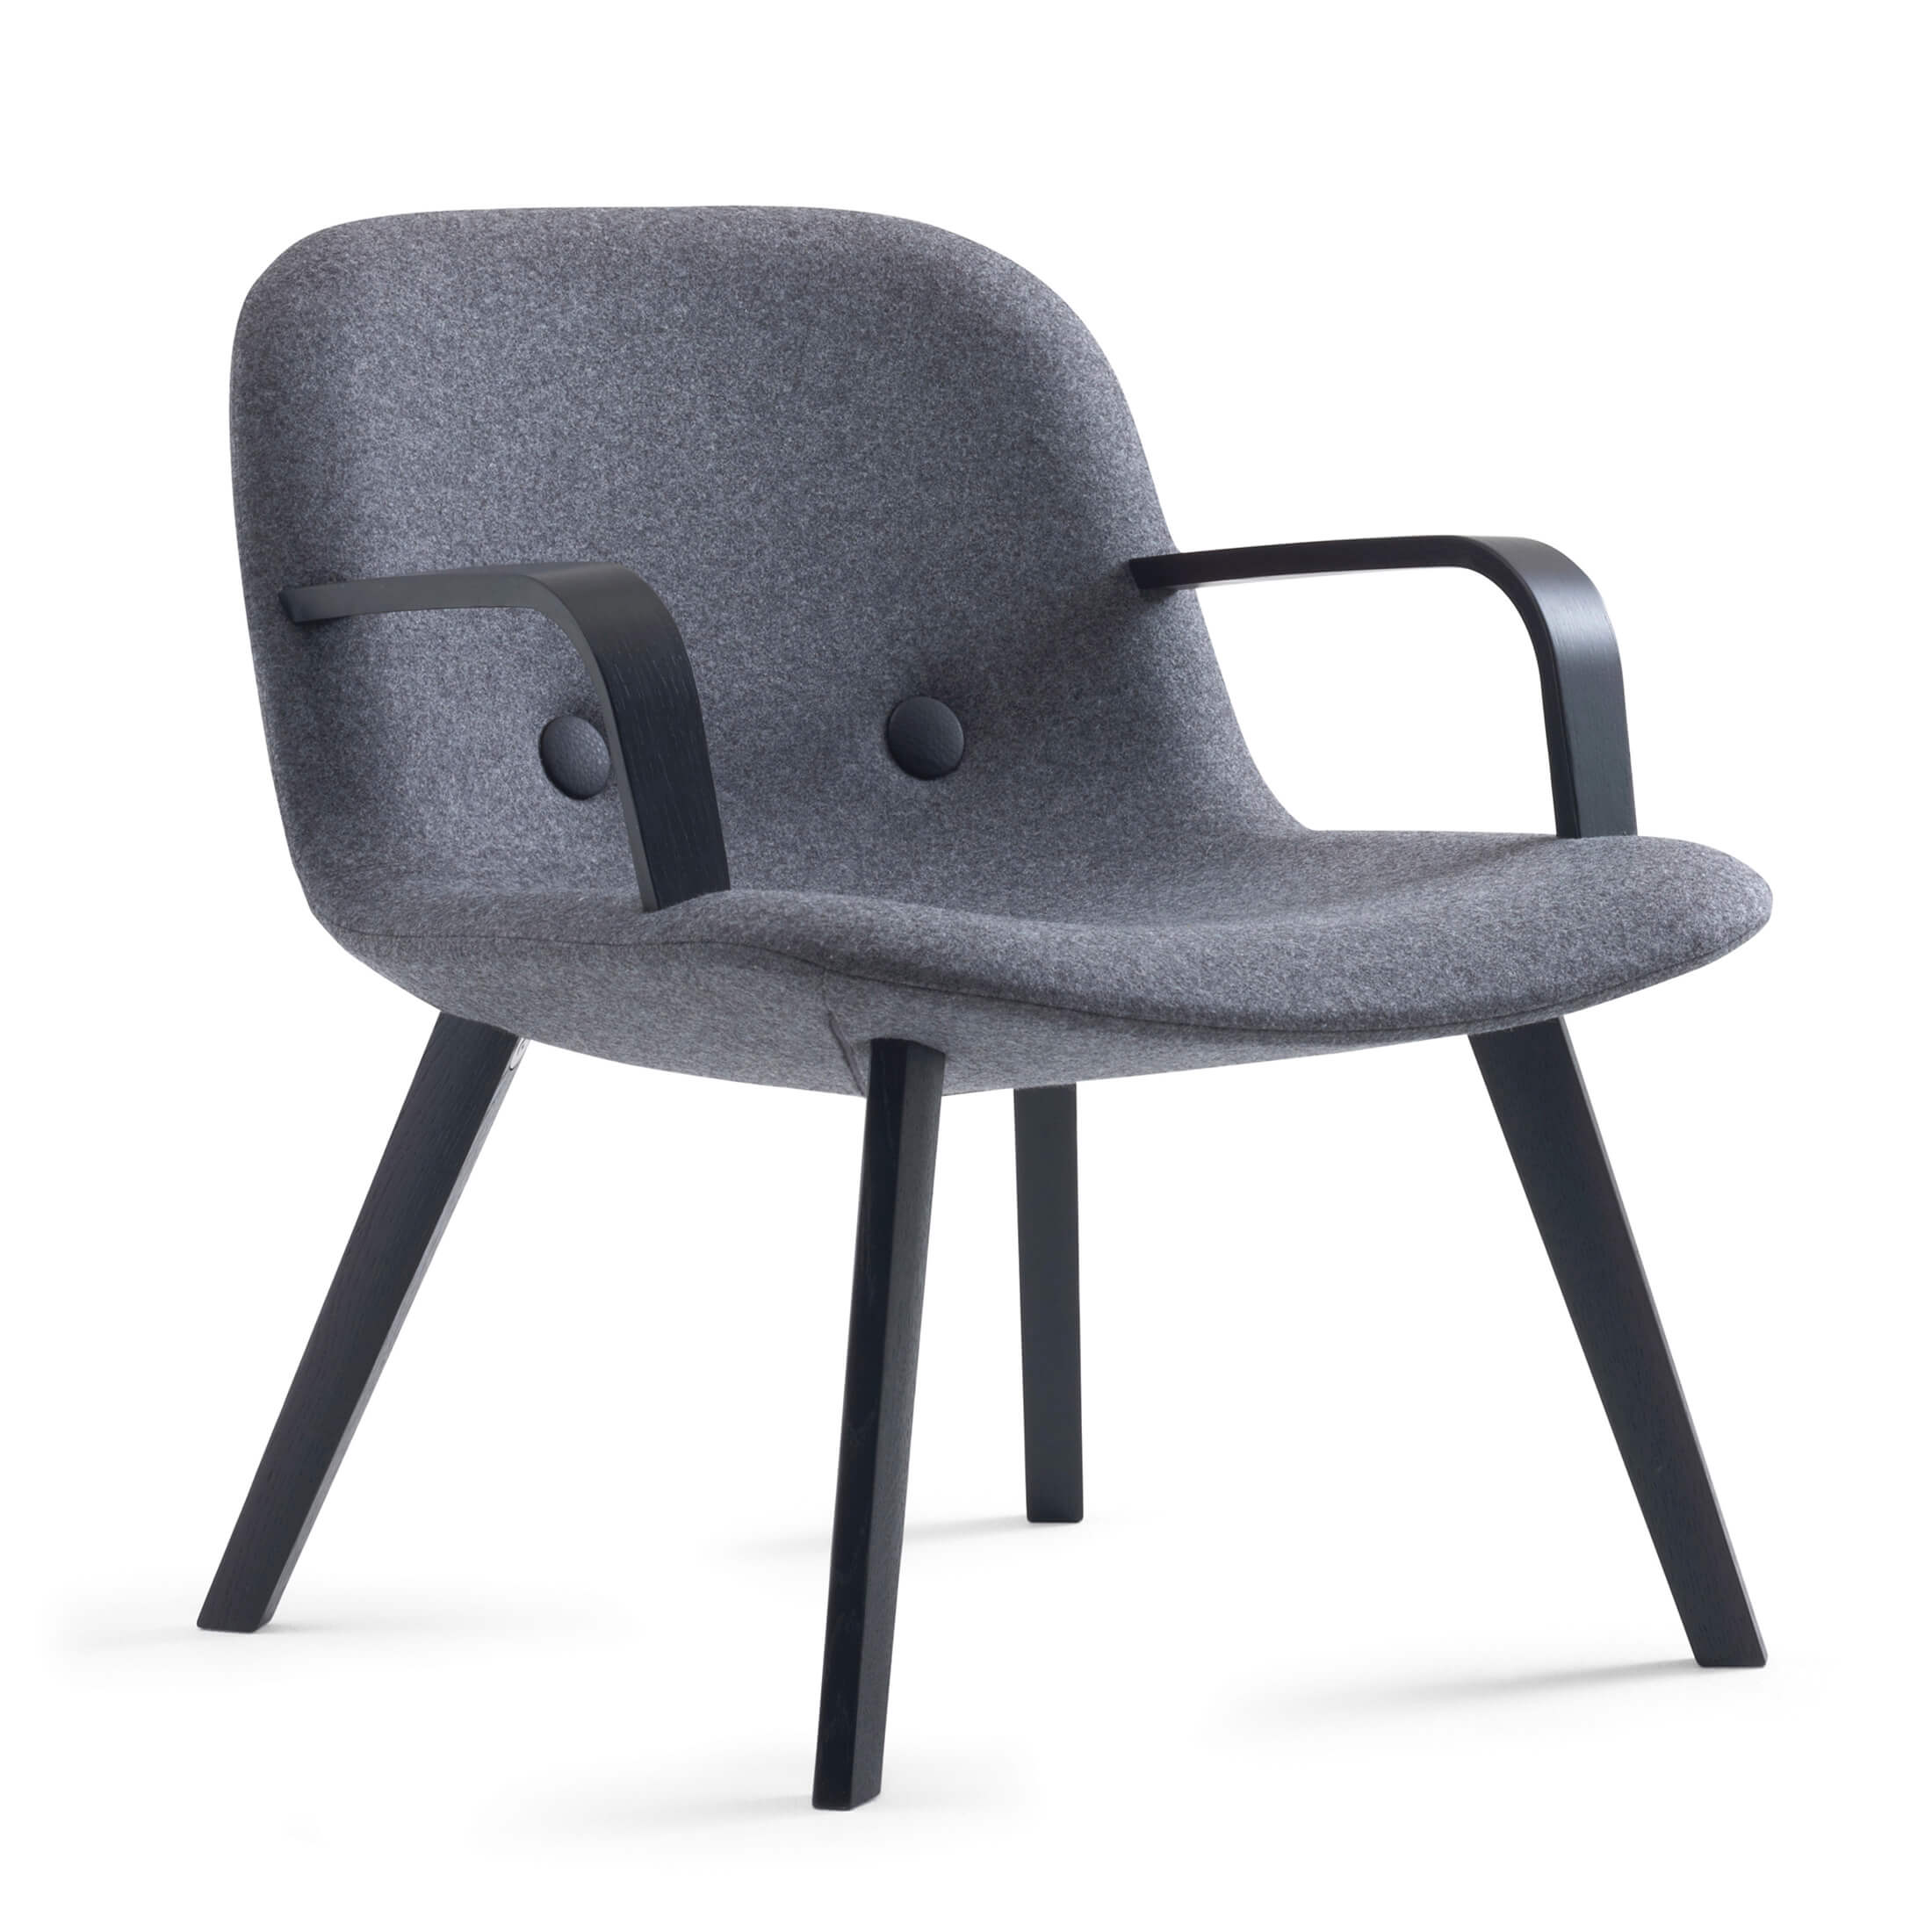 EJ3 - Eyes Wood lounge chair with arms